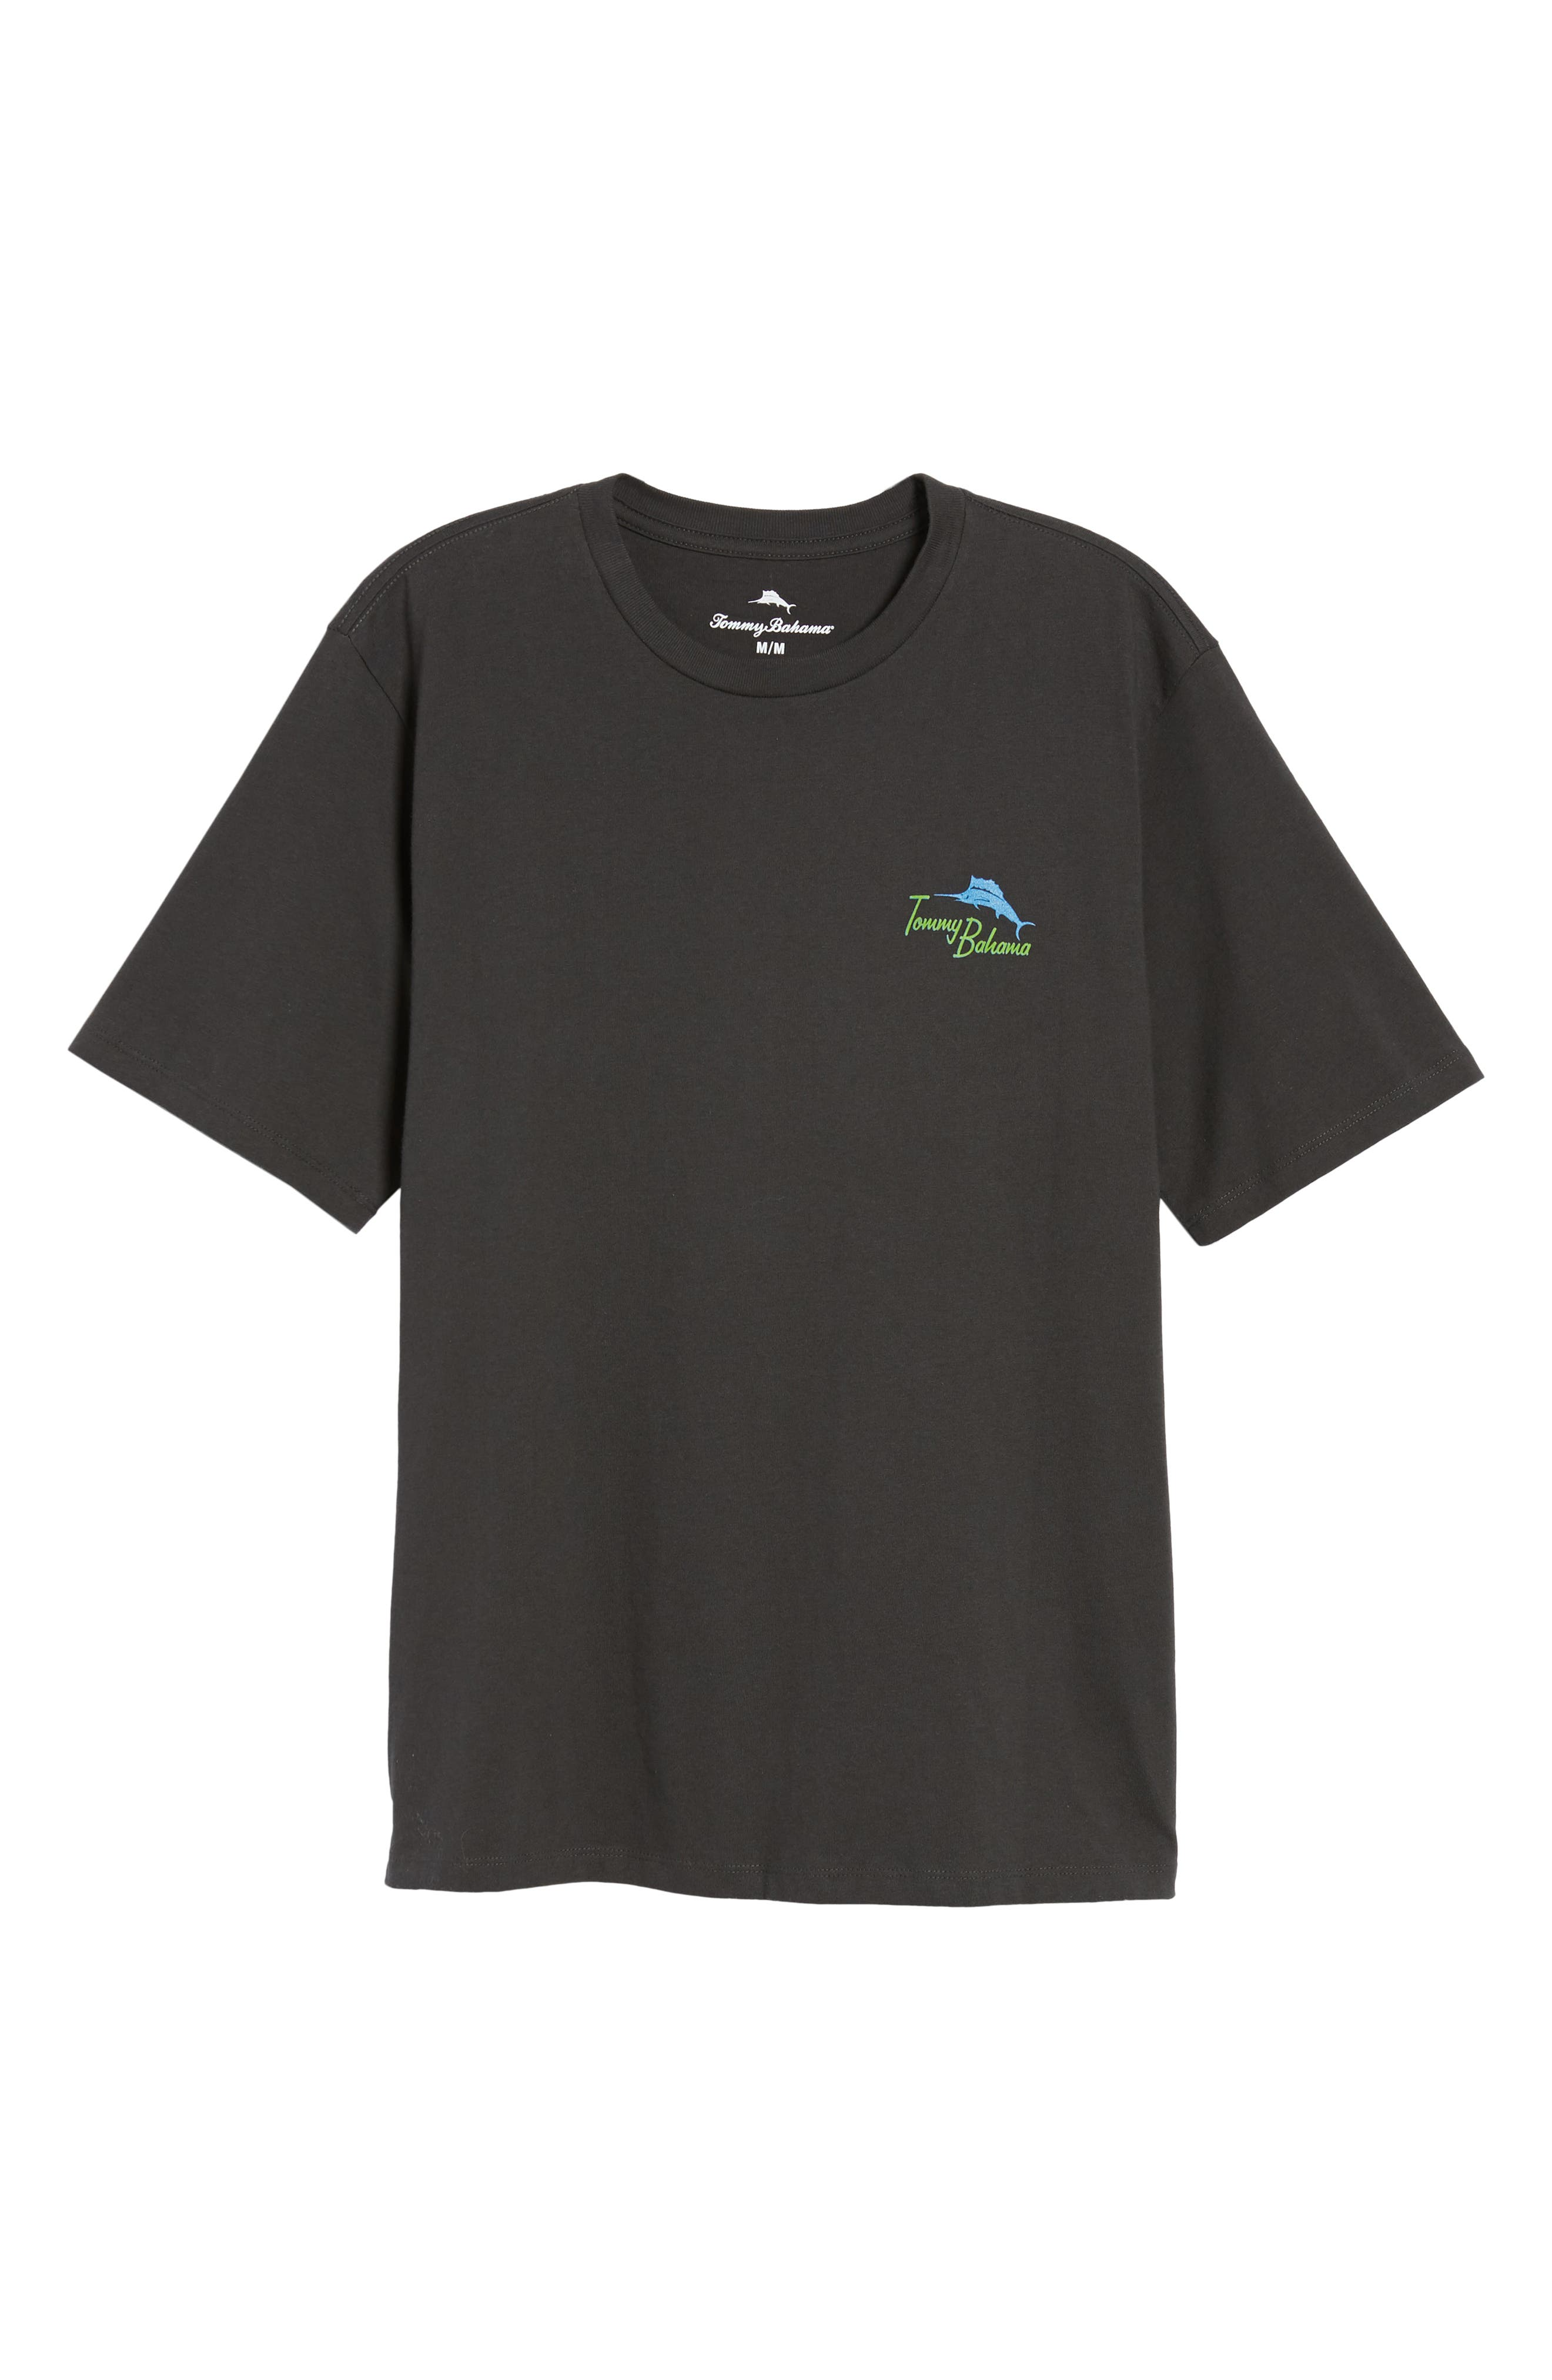 Friends in High Places Graphic T-Shirt,                             Alternate thumbnail 6, color,                             001